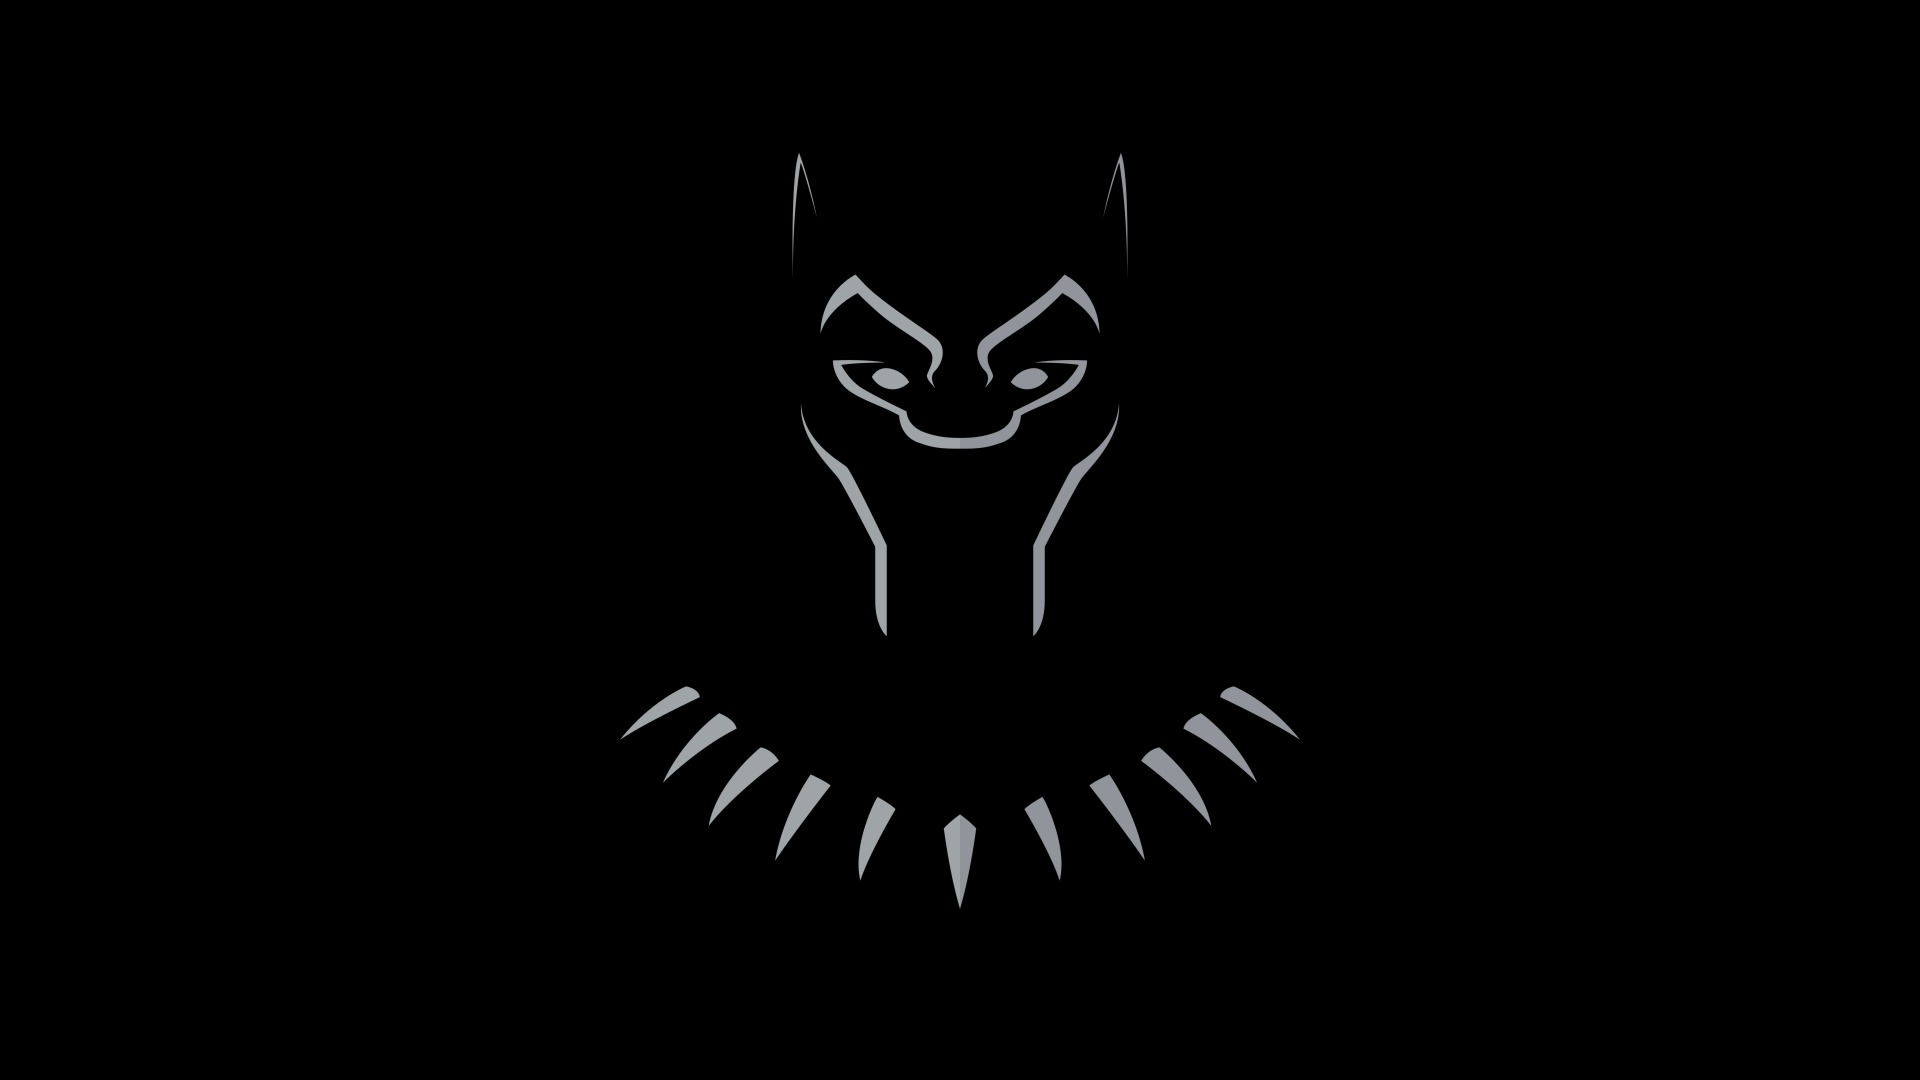 Black Panther Wallpaper Hd 1080p Posted By Christopher Walker